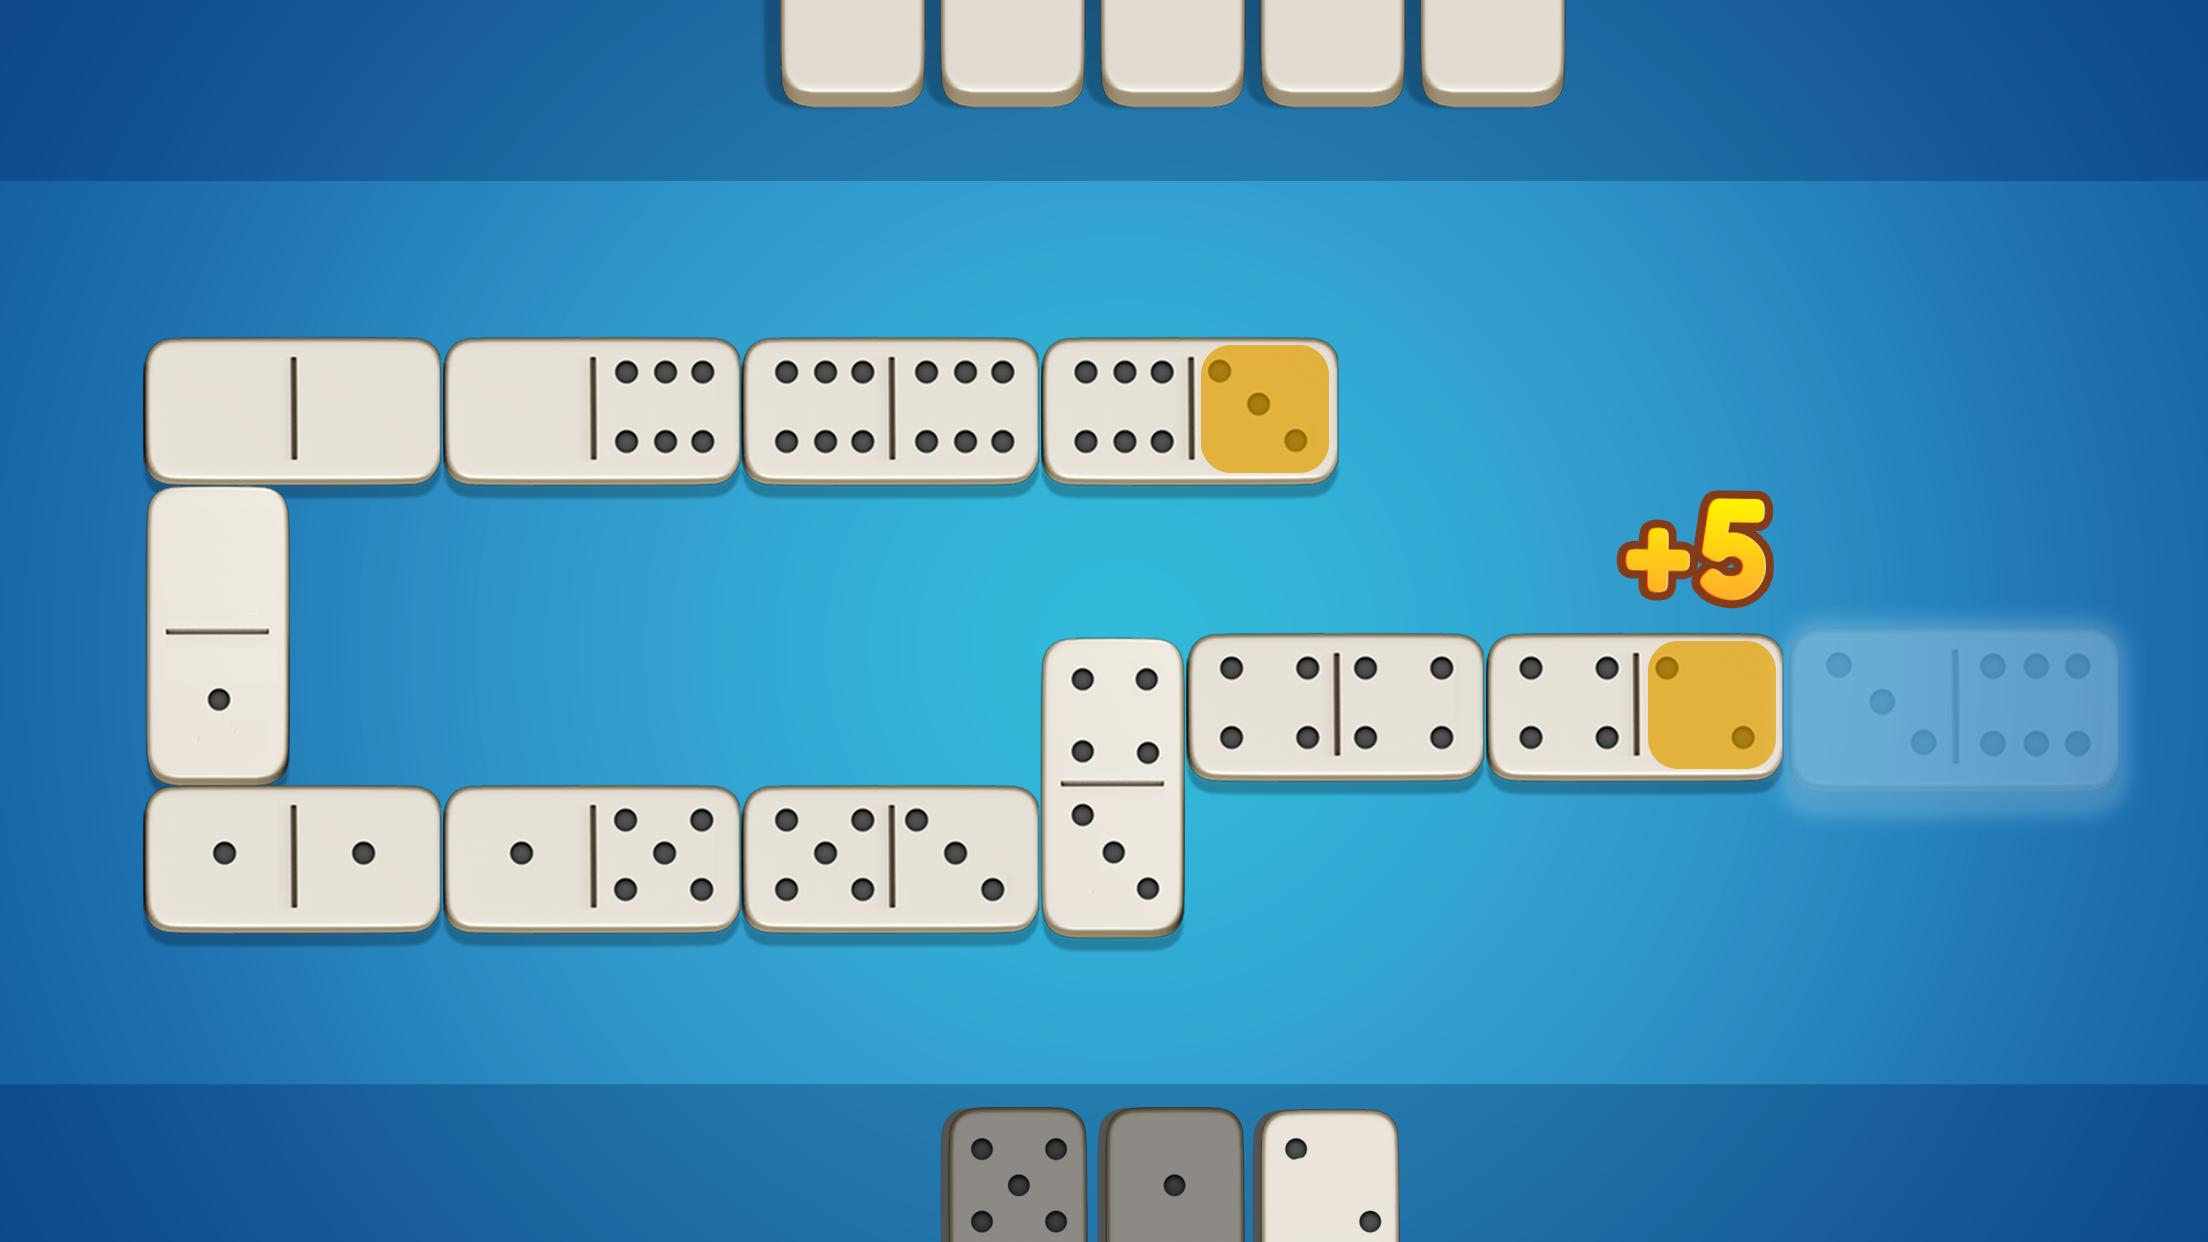 Dominos Party - Classic Domino Board Game 4.9.4 Screenshot 8